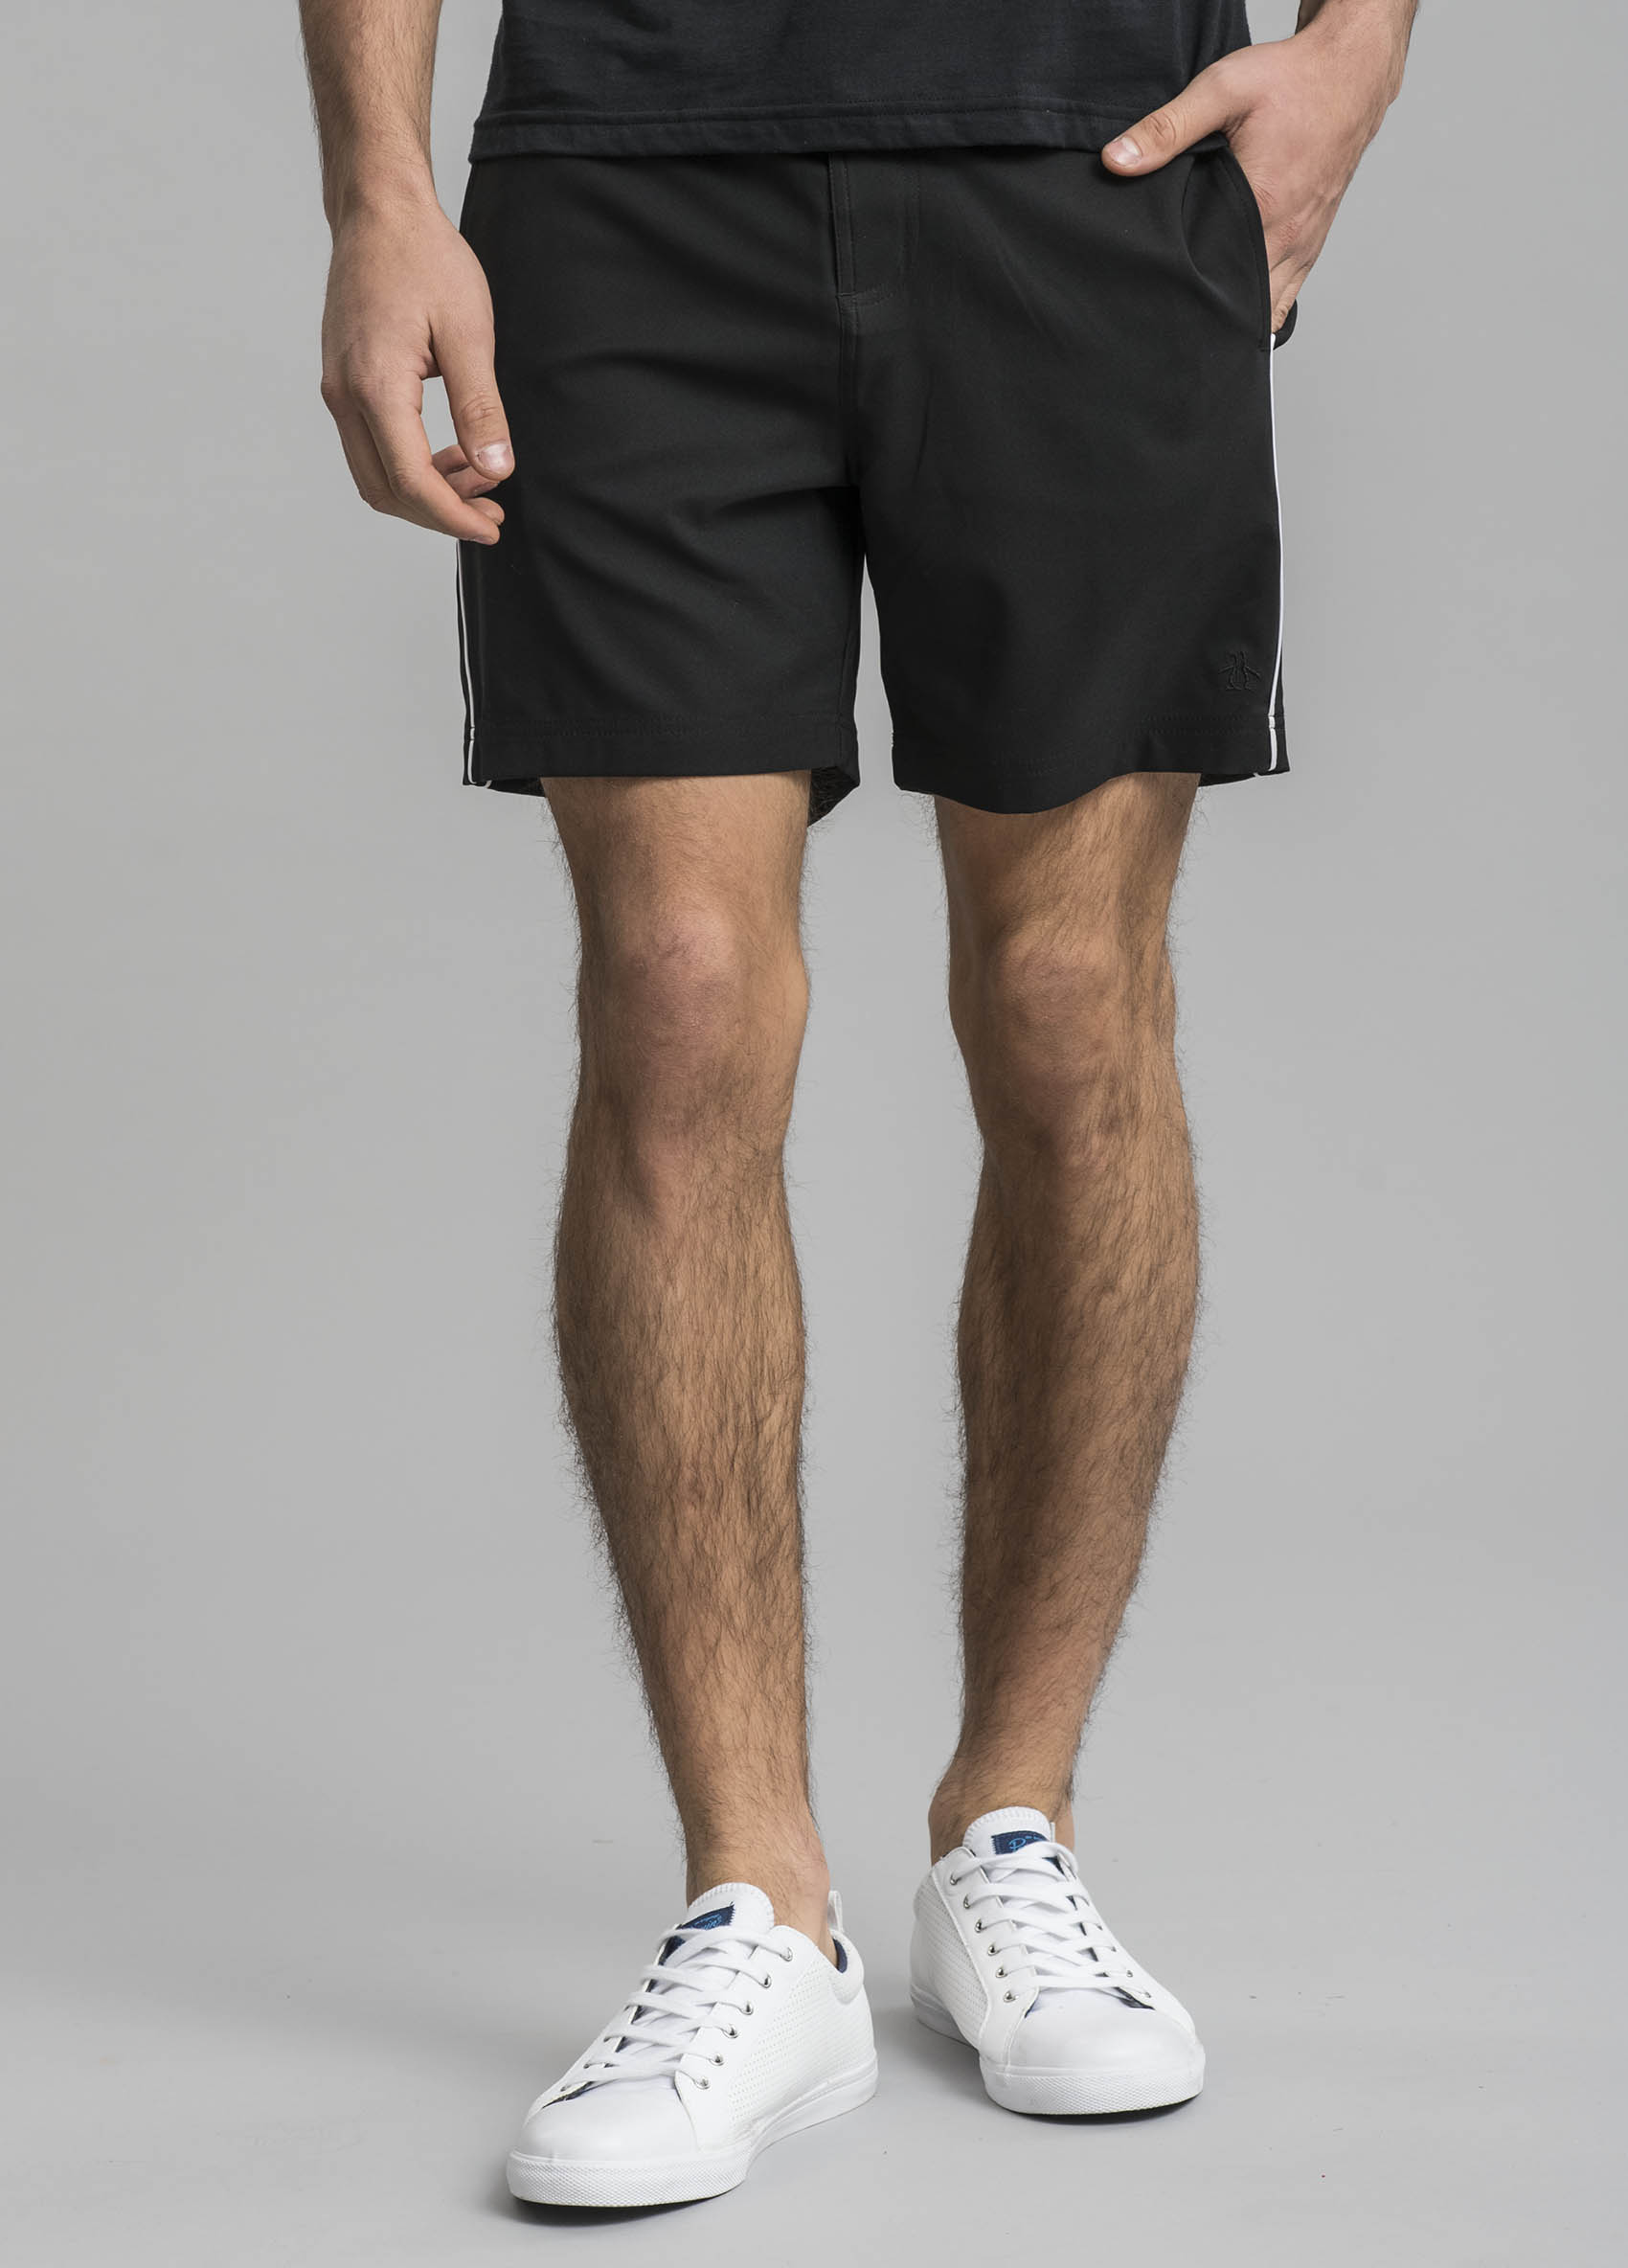 penguin_the-earl-volley-fixed-waist-swim-short_30-18-2021__picture-11741